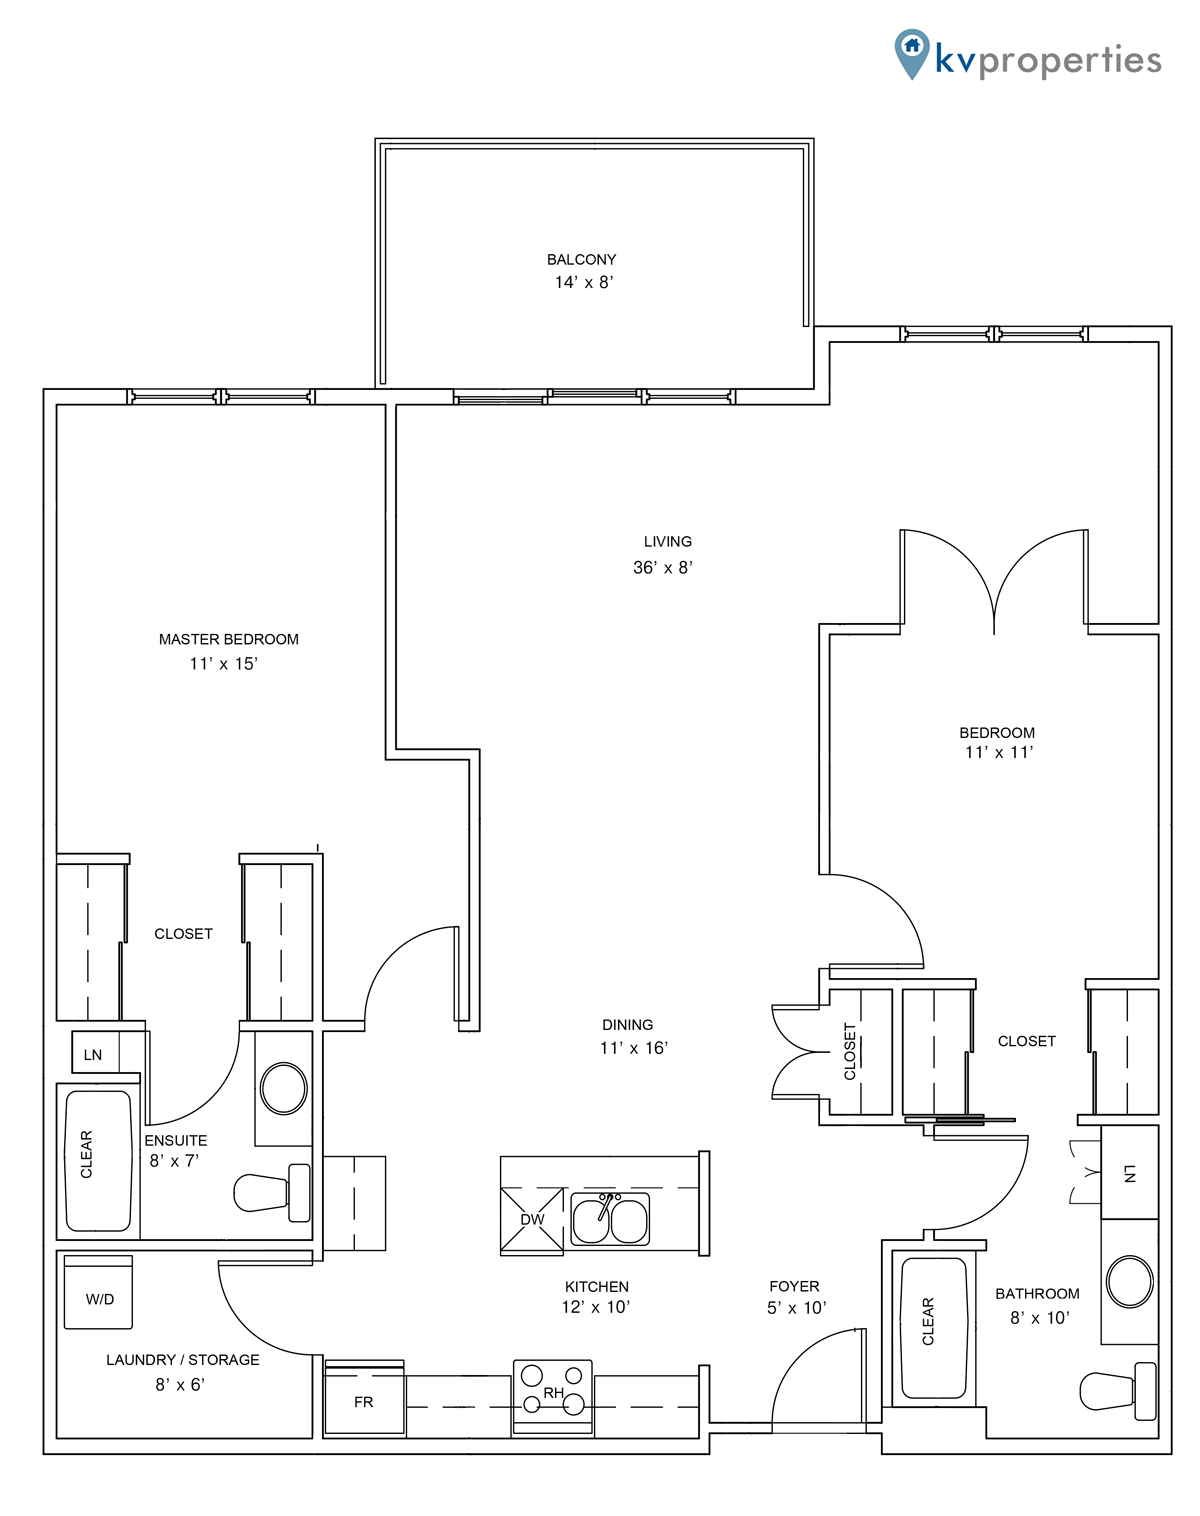 Sandstone Place - Apartment Style B